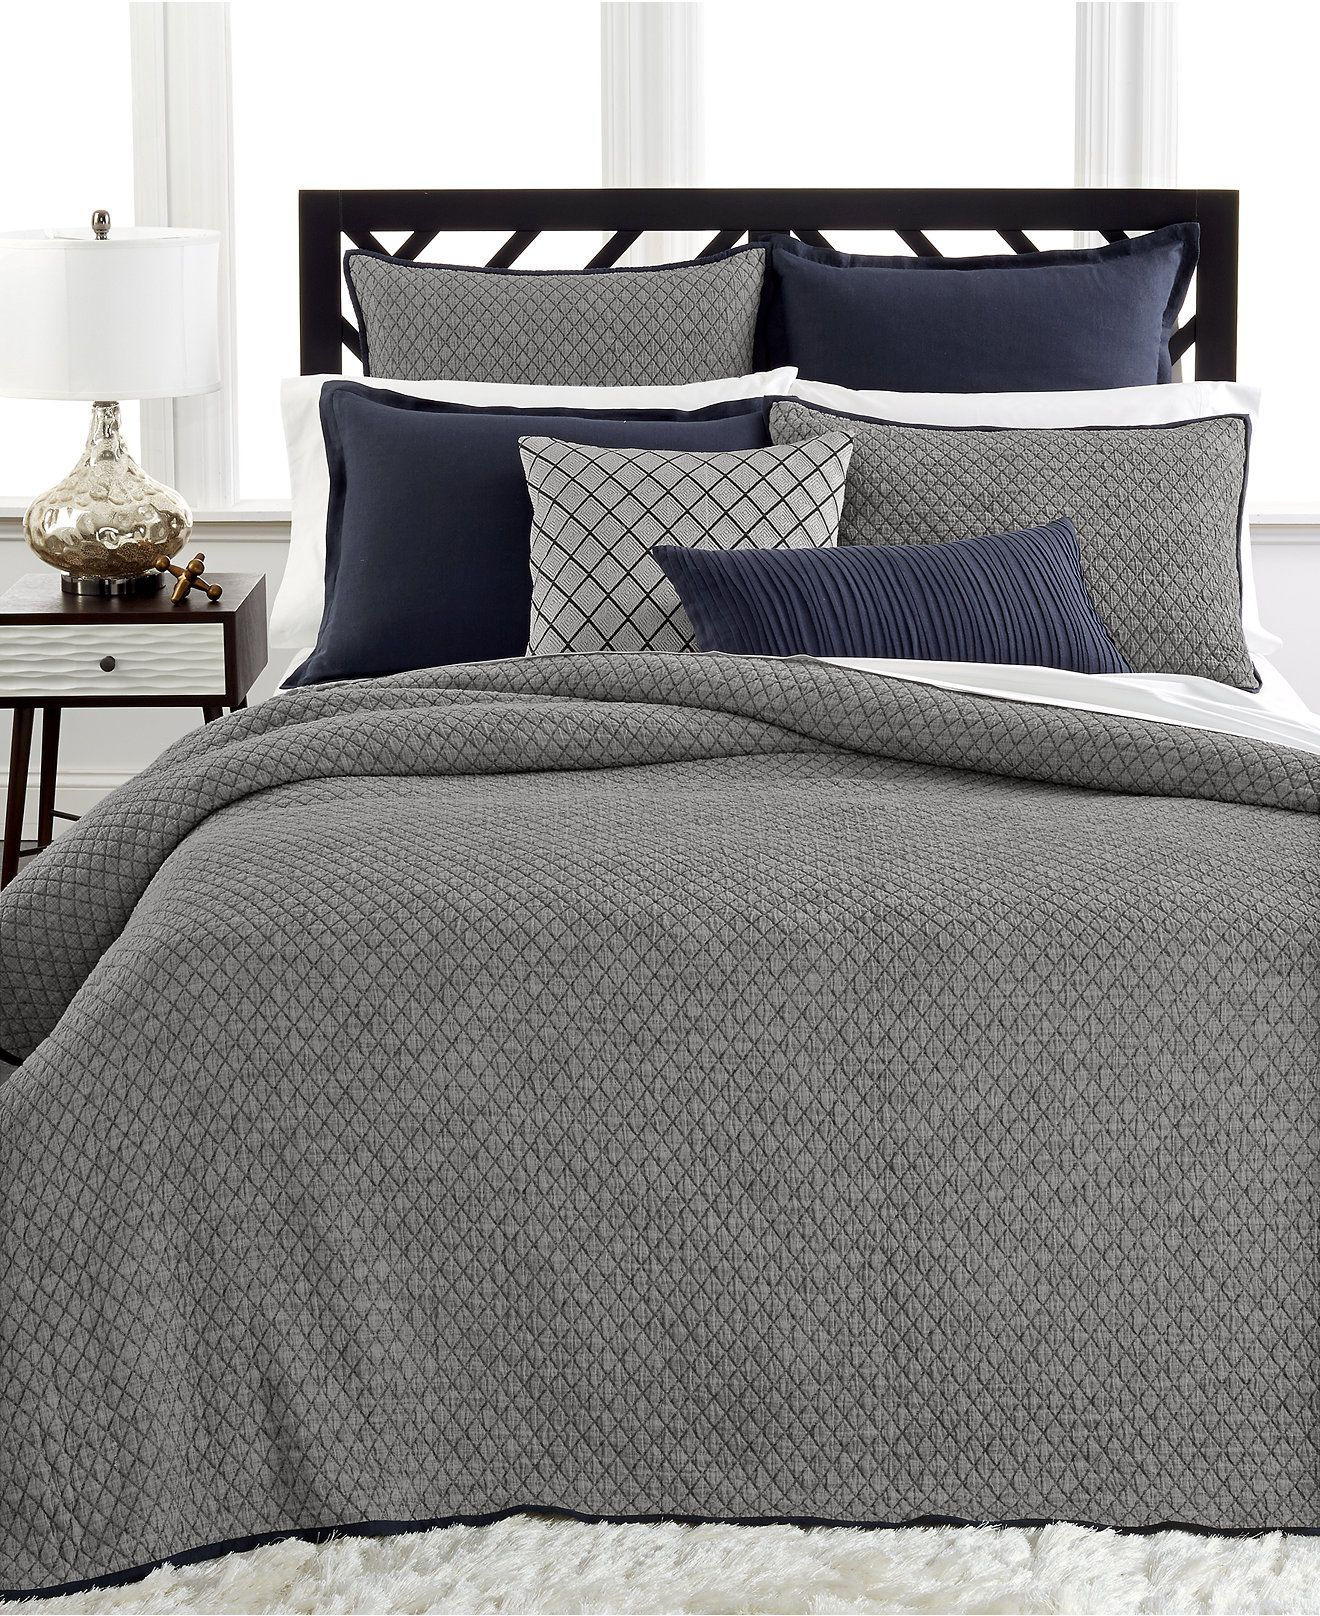 Elegant Hotel Collection Linen Navy Quilted Full/Queen Coverlet   Bedding  Collections   Bed U0026 Bath